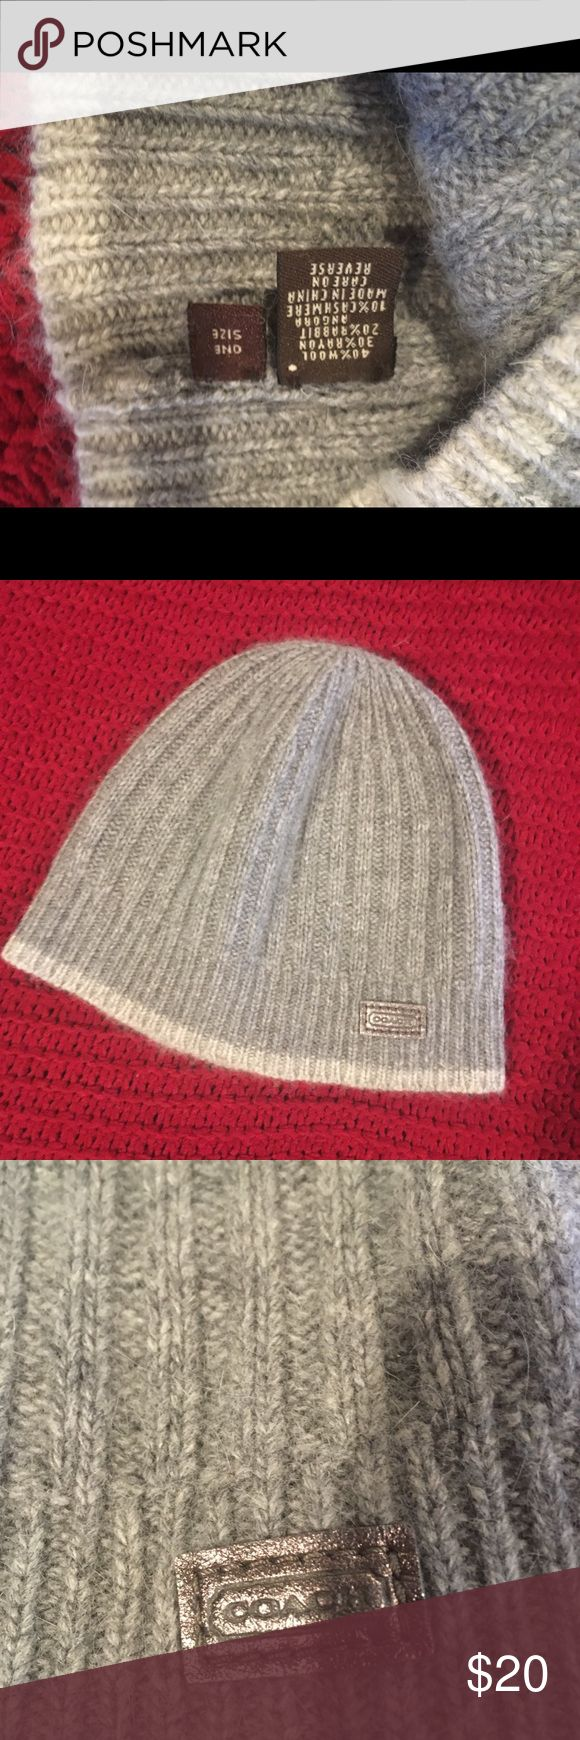 Coach Hat Worn 2 times, very warm Winter hat. Grey goes with anything! Coach Accessories Hats